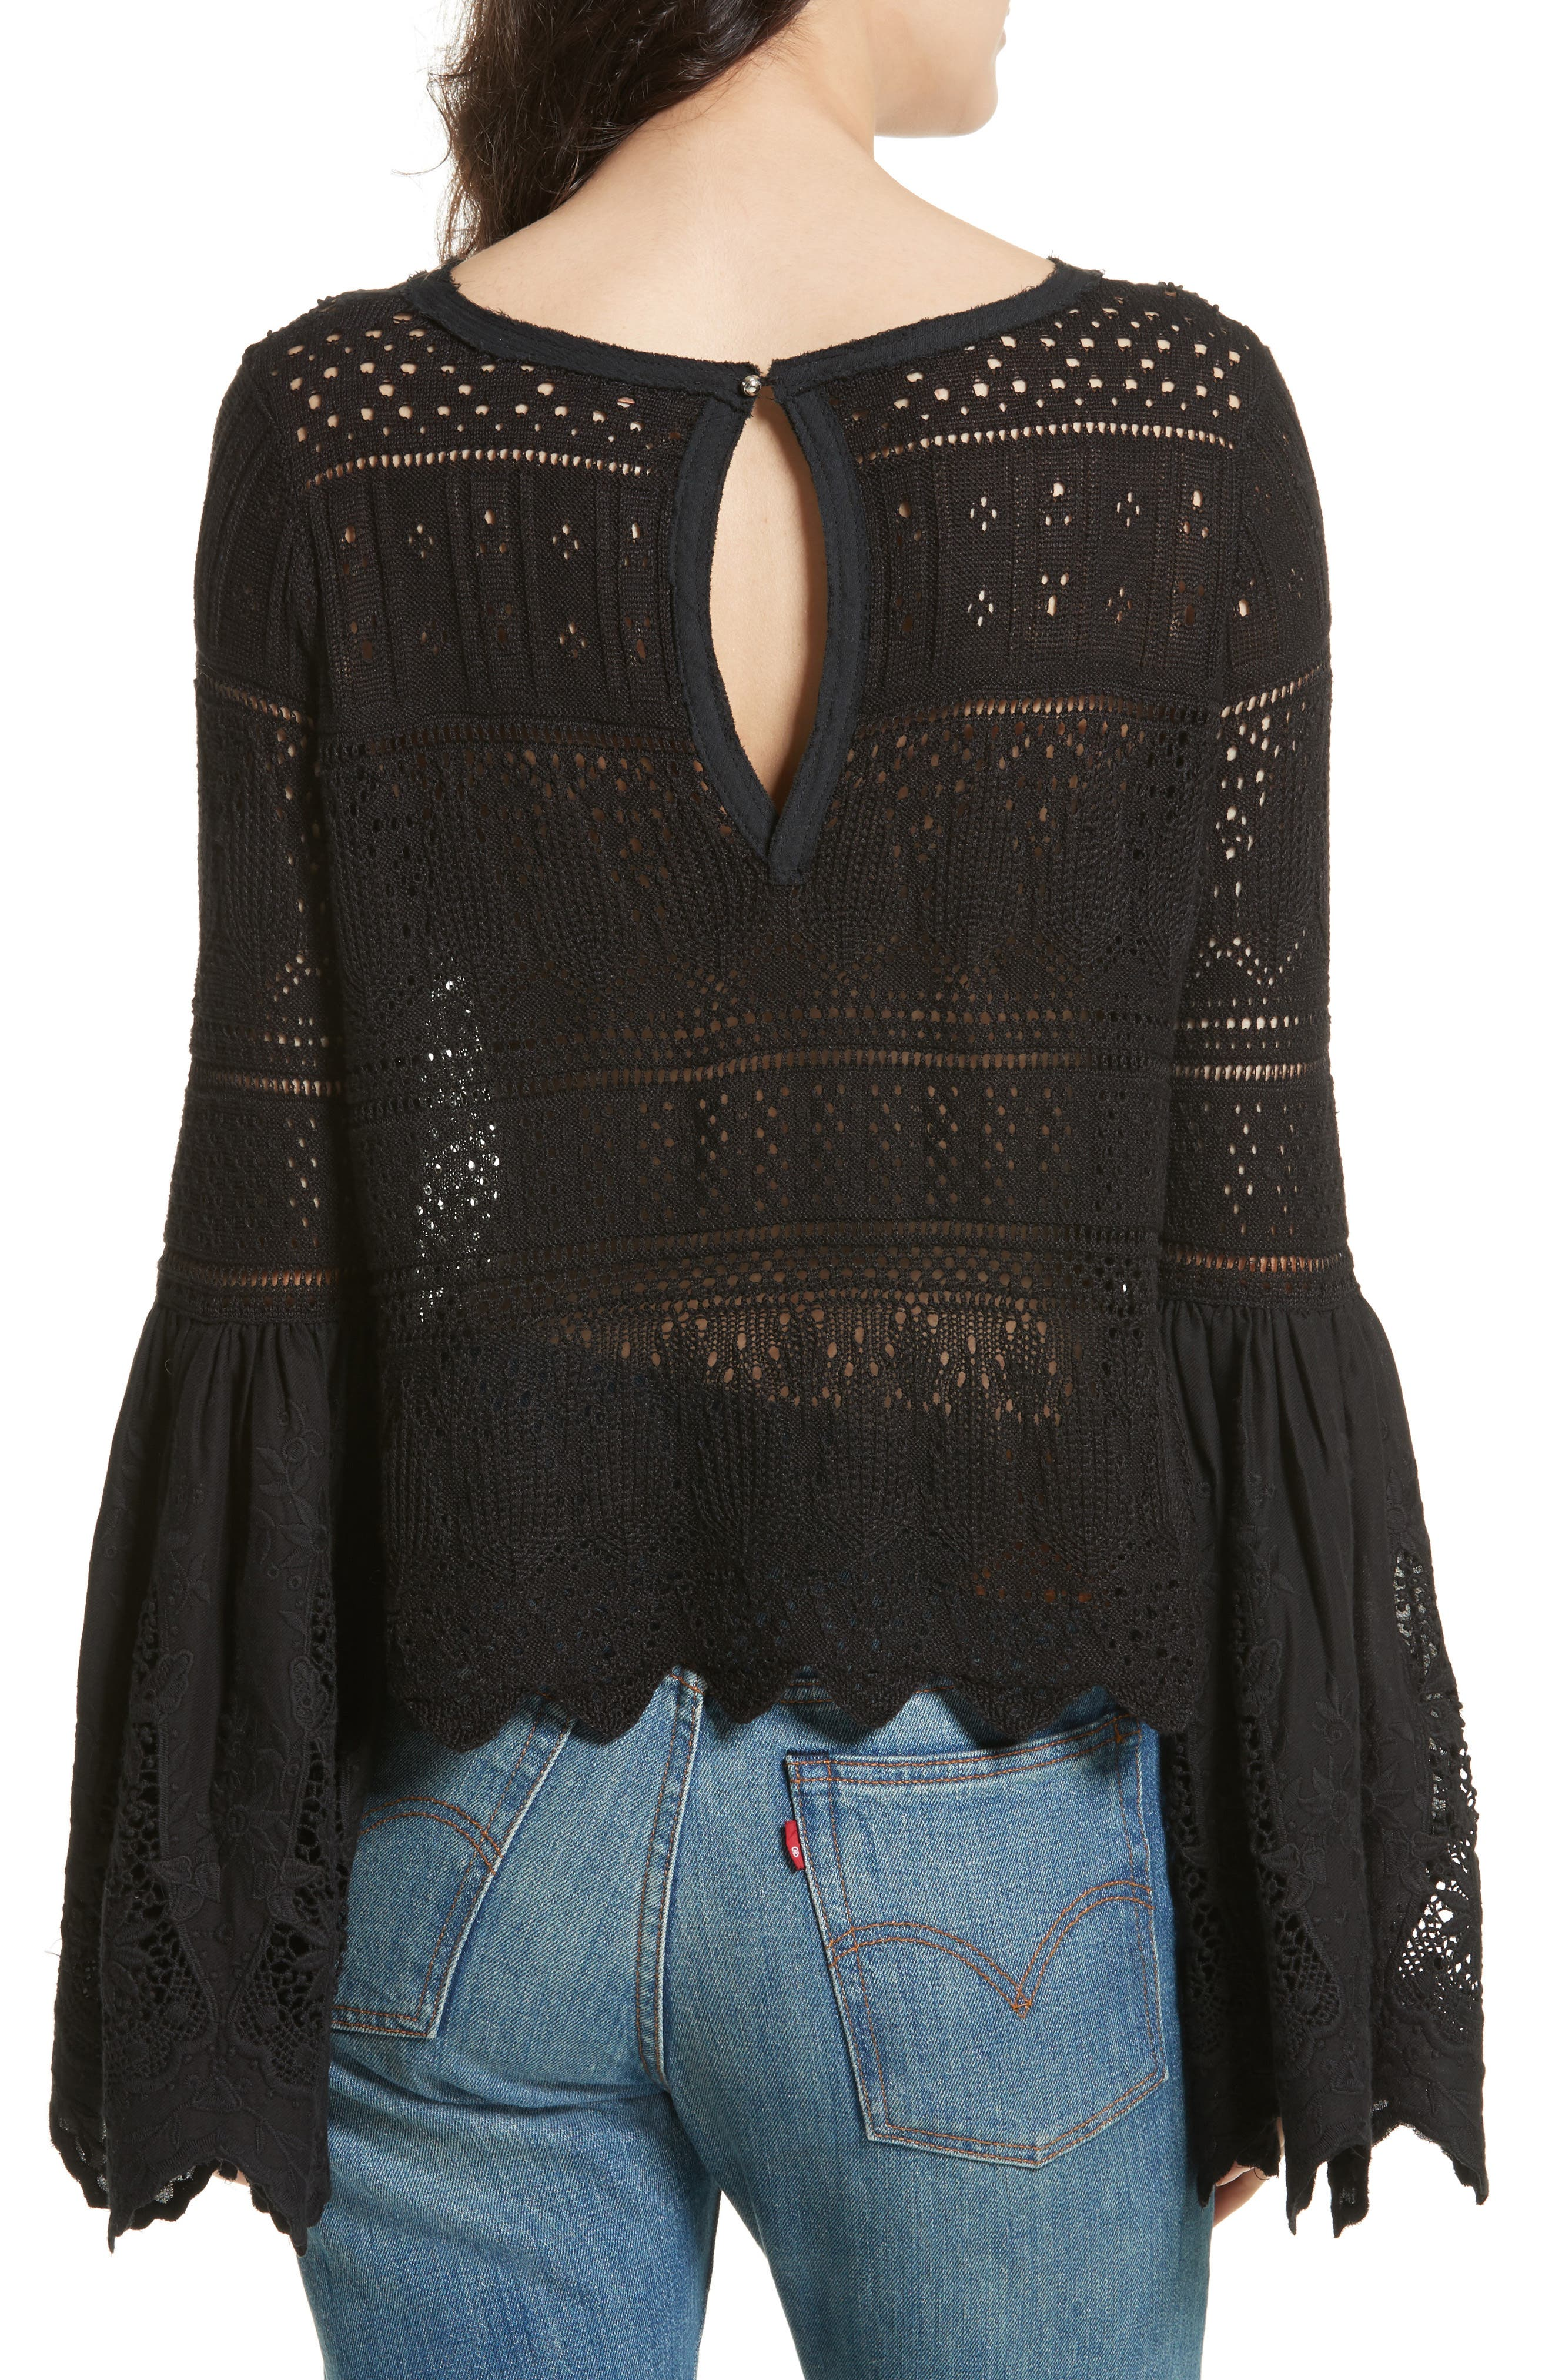 Once Upon a Time Lace Top,                             Alternate thumbnail 2, color,                             Black